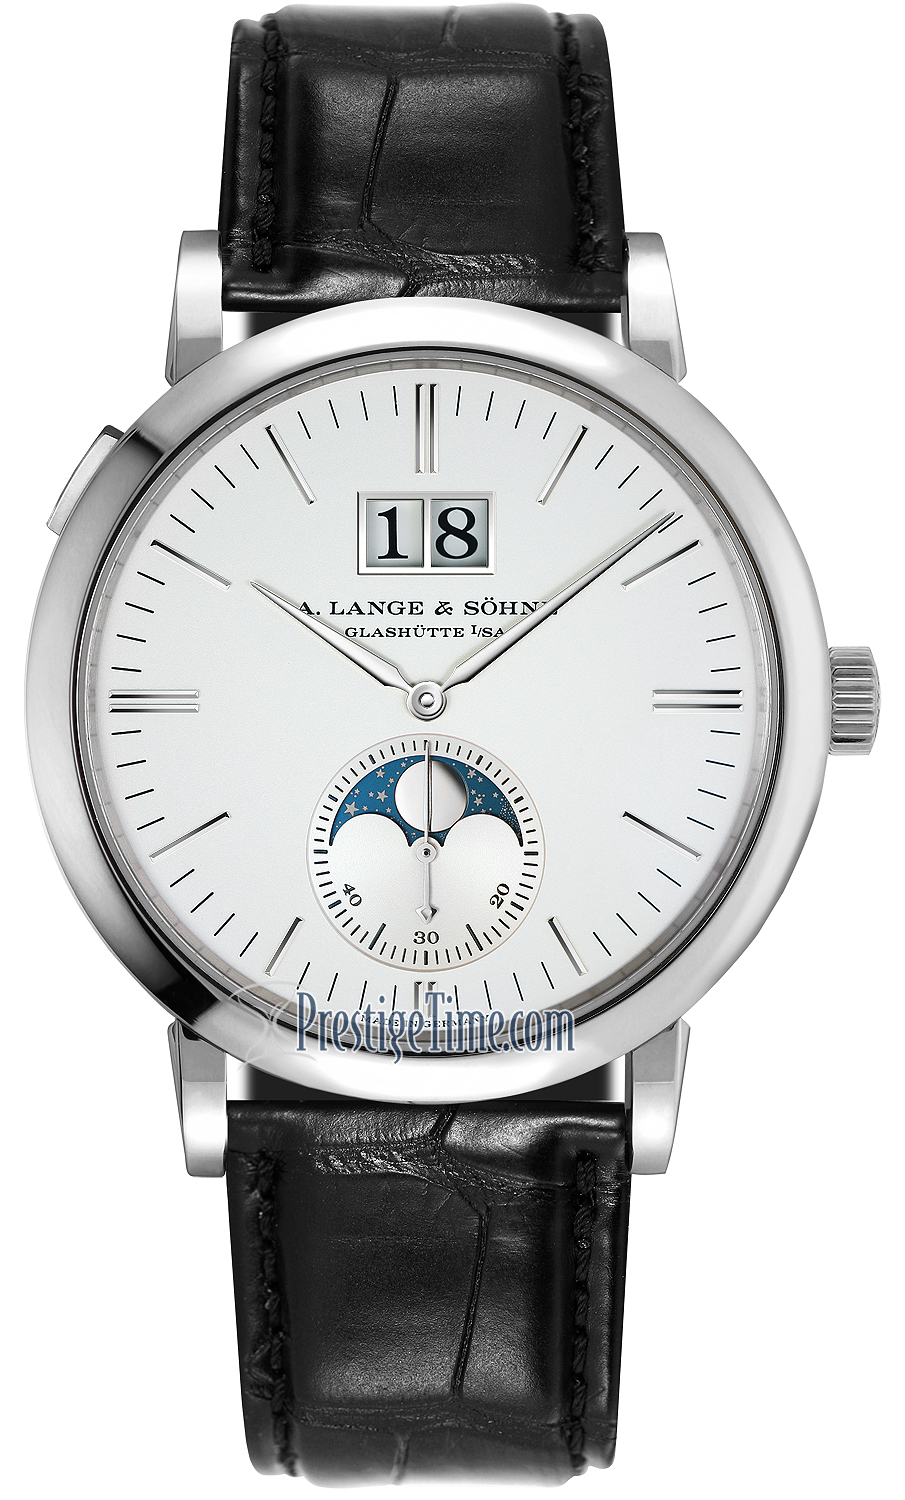 moonphase christopher under phase for nice moon watches any ablogtowatch ward watch